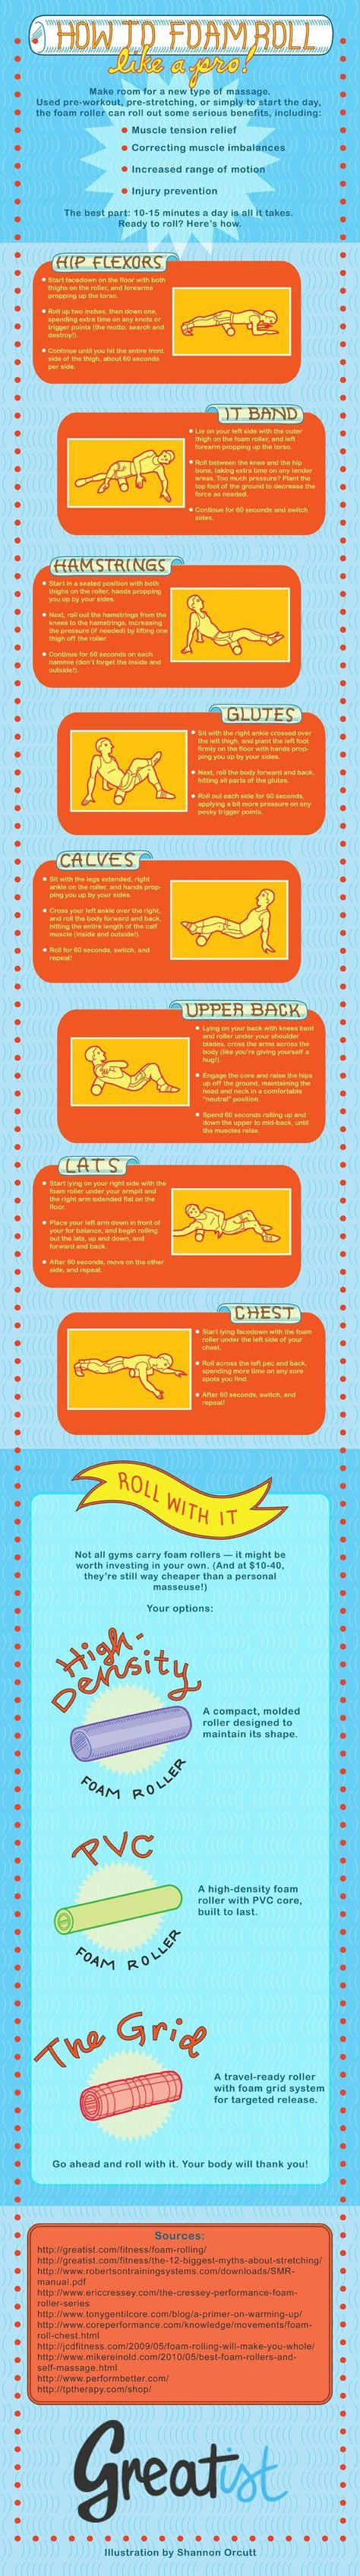 How to foam roll like a pro! Your muscles will thanks you for it.